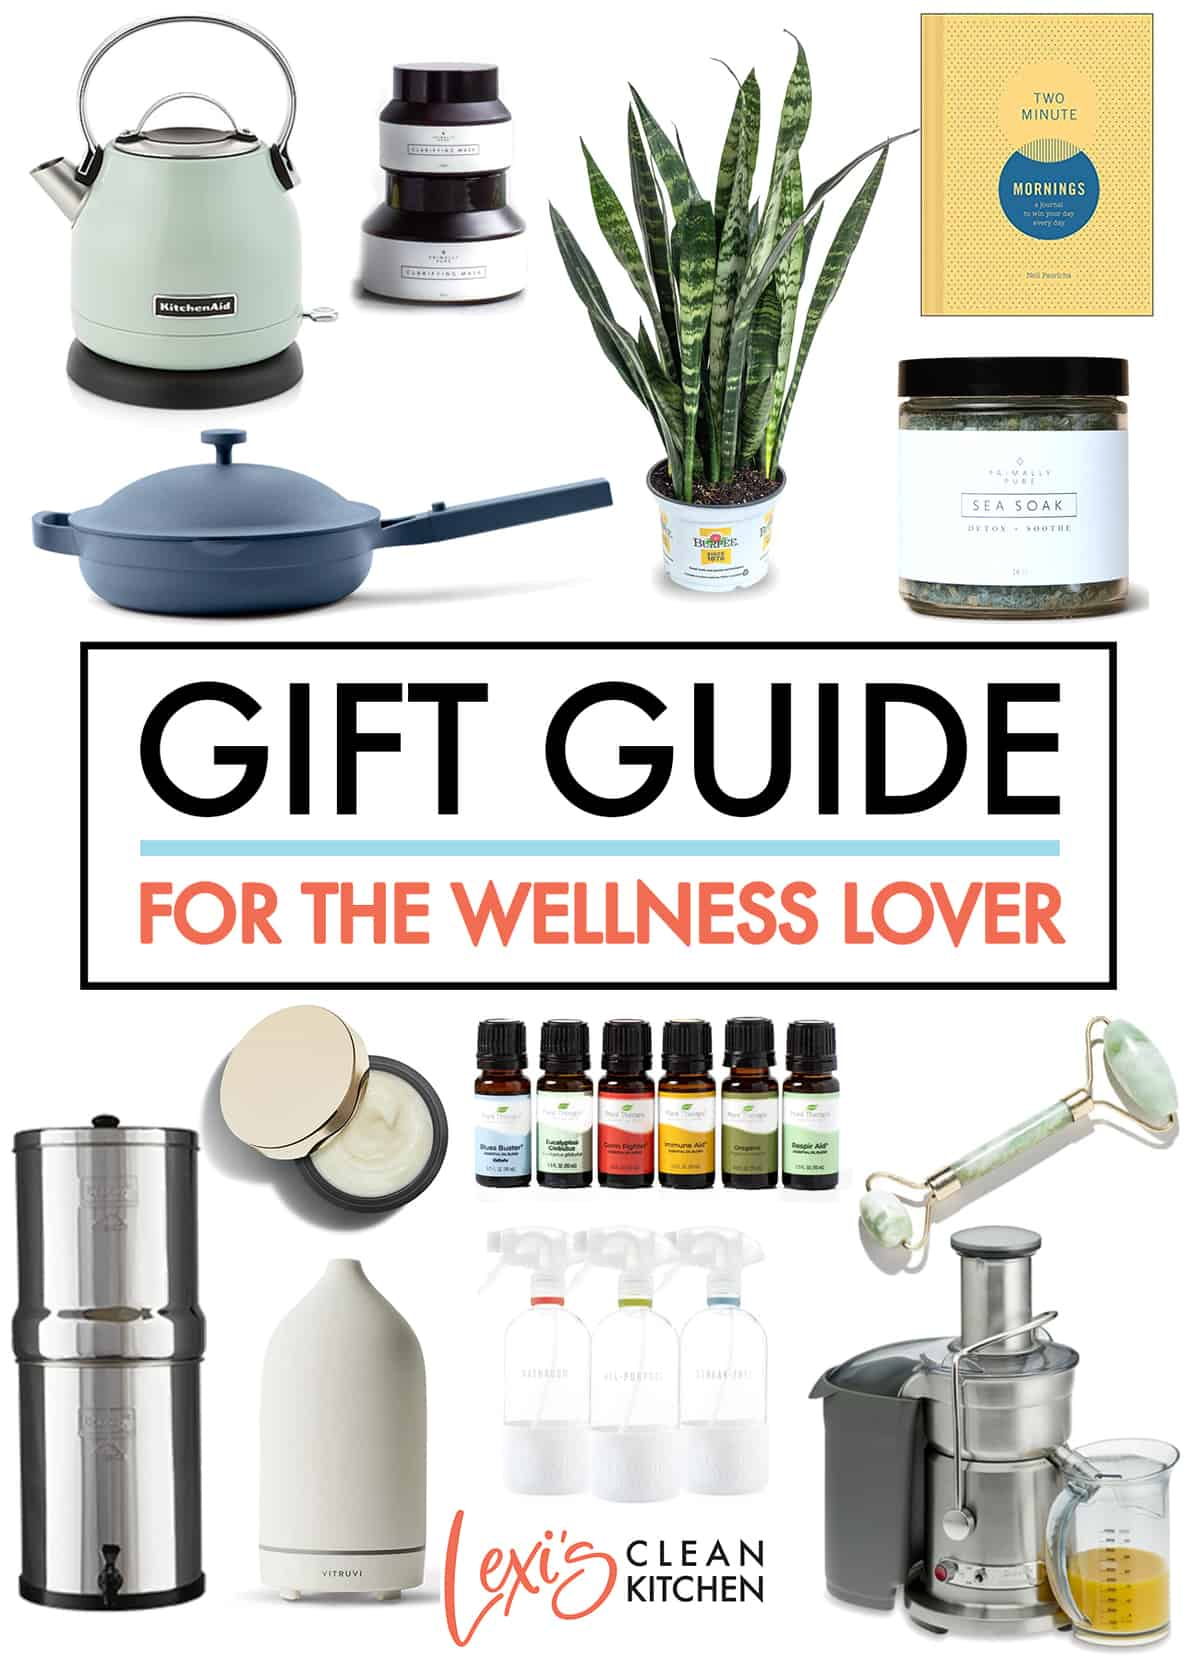 2021 Holiday Gift Guide for Wellness + Self-Care